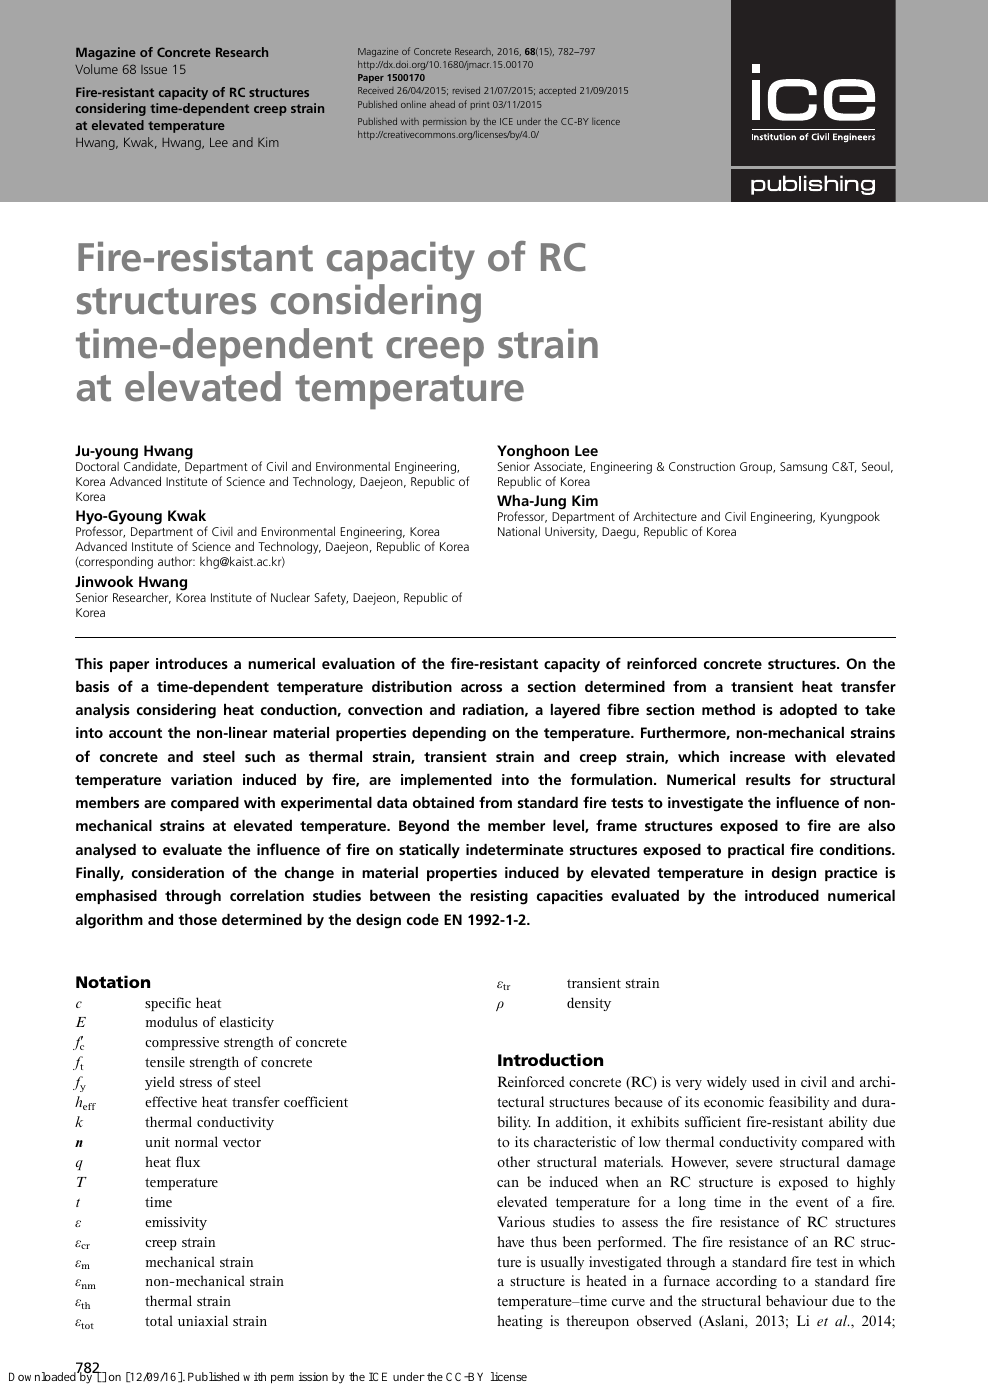 Fire-resistant capacity of RC structures considering time-dependent